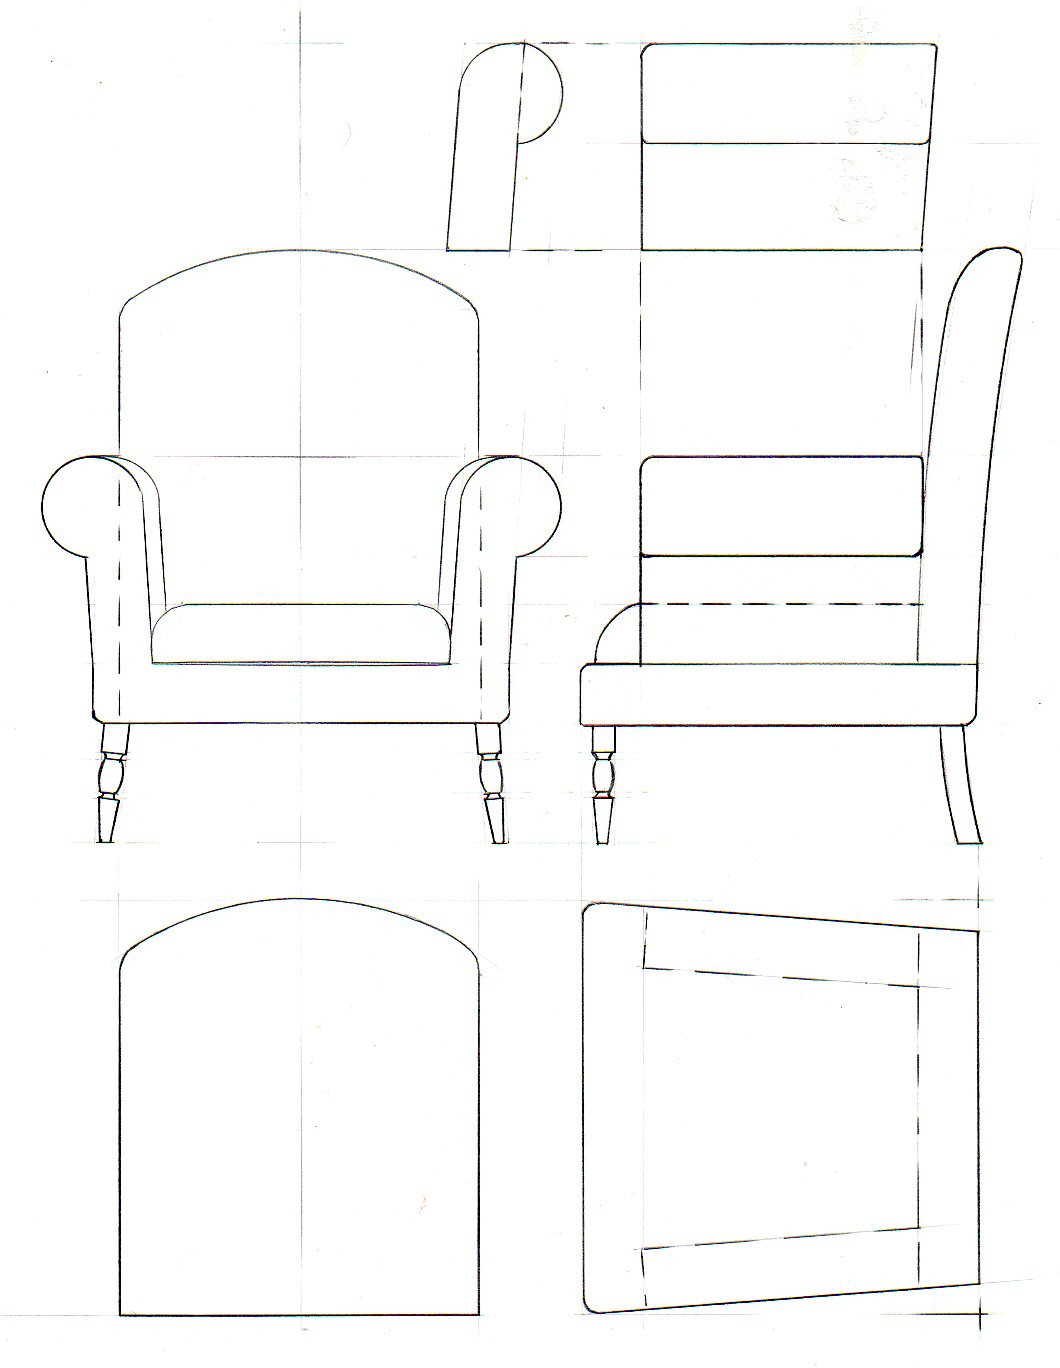 28 Furniture Drawings To Scale Plans Timely